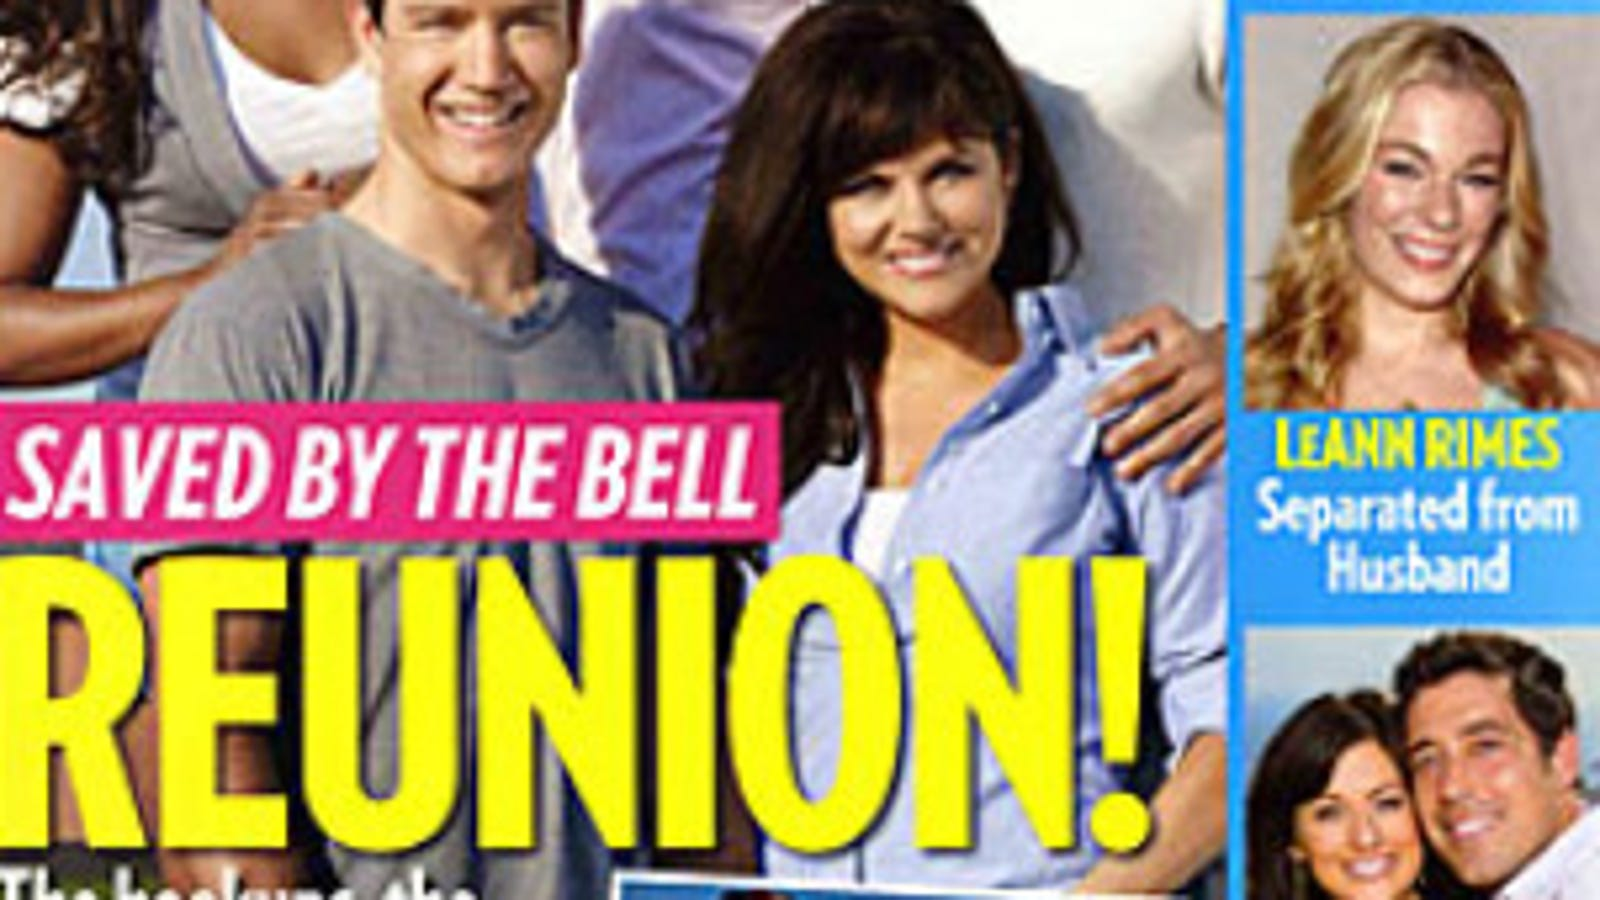 HQ SBTB People Magazine Reunion - Saved by the Bell Photo ... |Saved By The Bell Reunion People Magazine